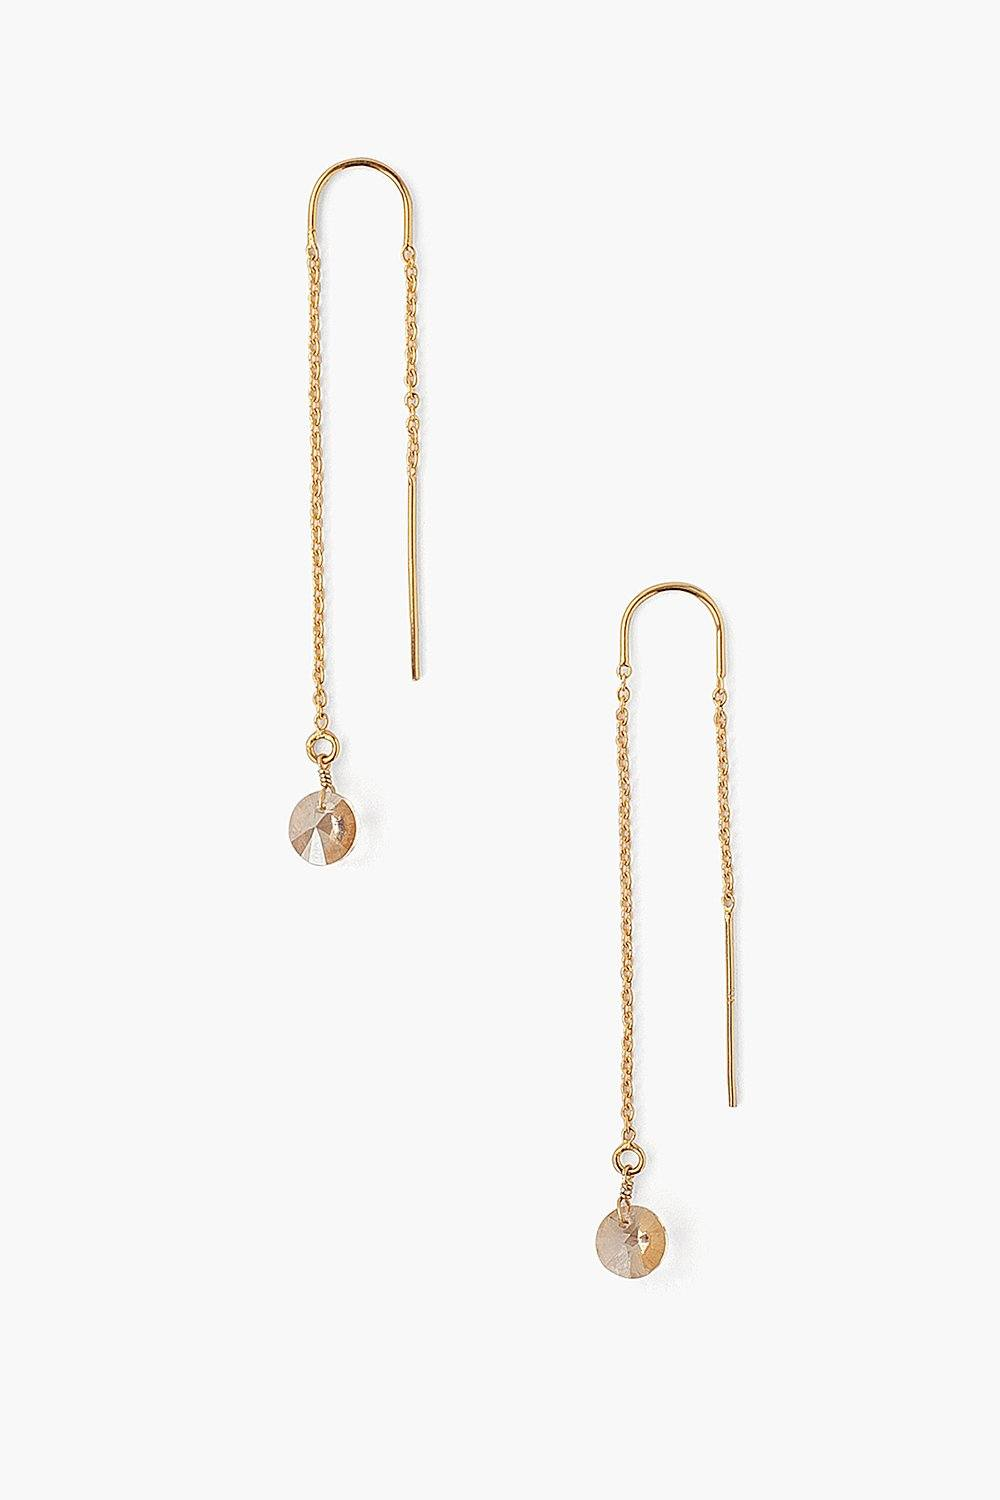 Golden Crystal Thread Thru Earrings